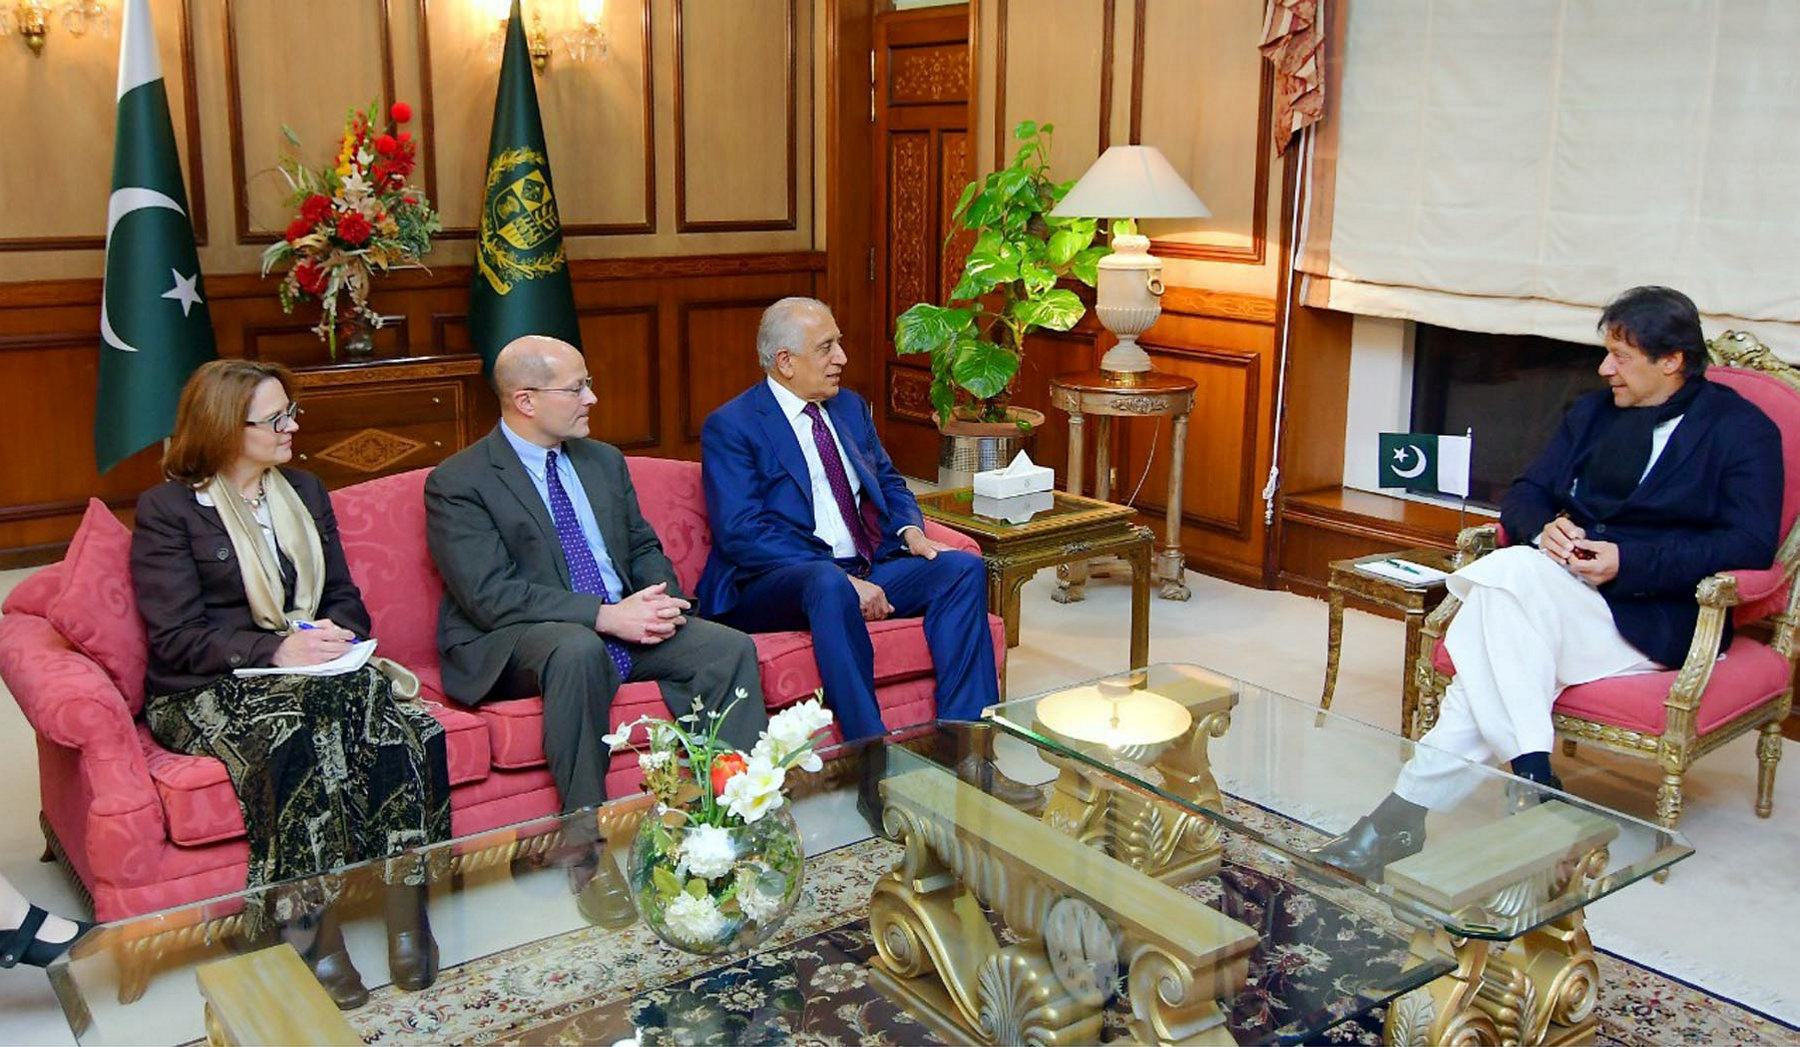 Pakistani Prime Minister Imran Khan (R) speaks with U.S. special envoy Zalmay Khalilzad (3rd L) during a meeting at the Prime Minister's office in Islamabad, Pakistan, in this handout photo released Jan. 18, 2018.